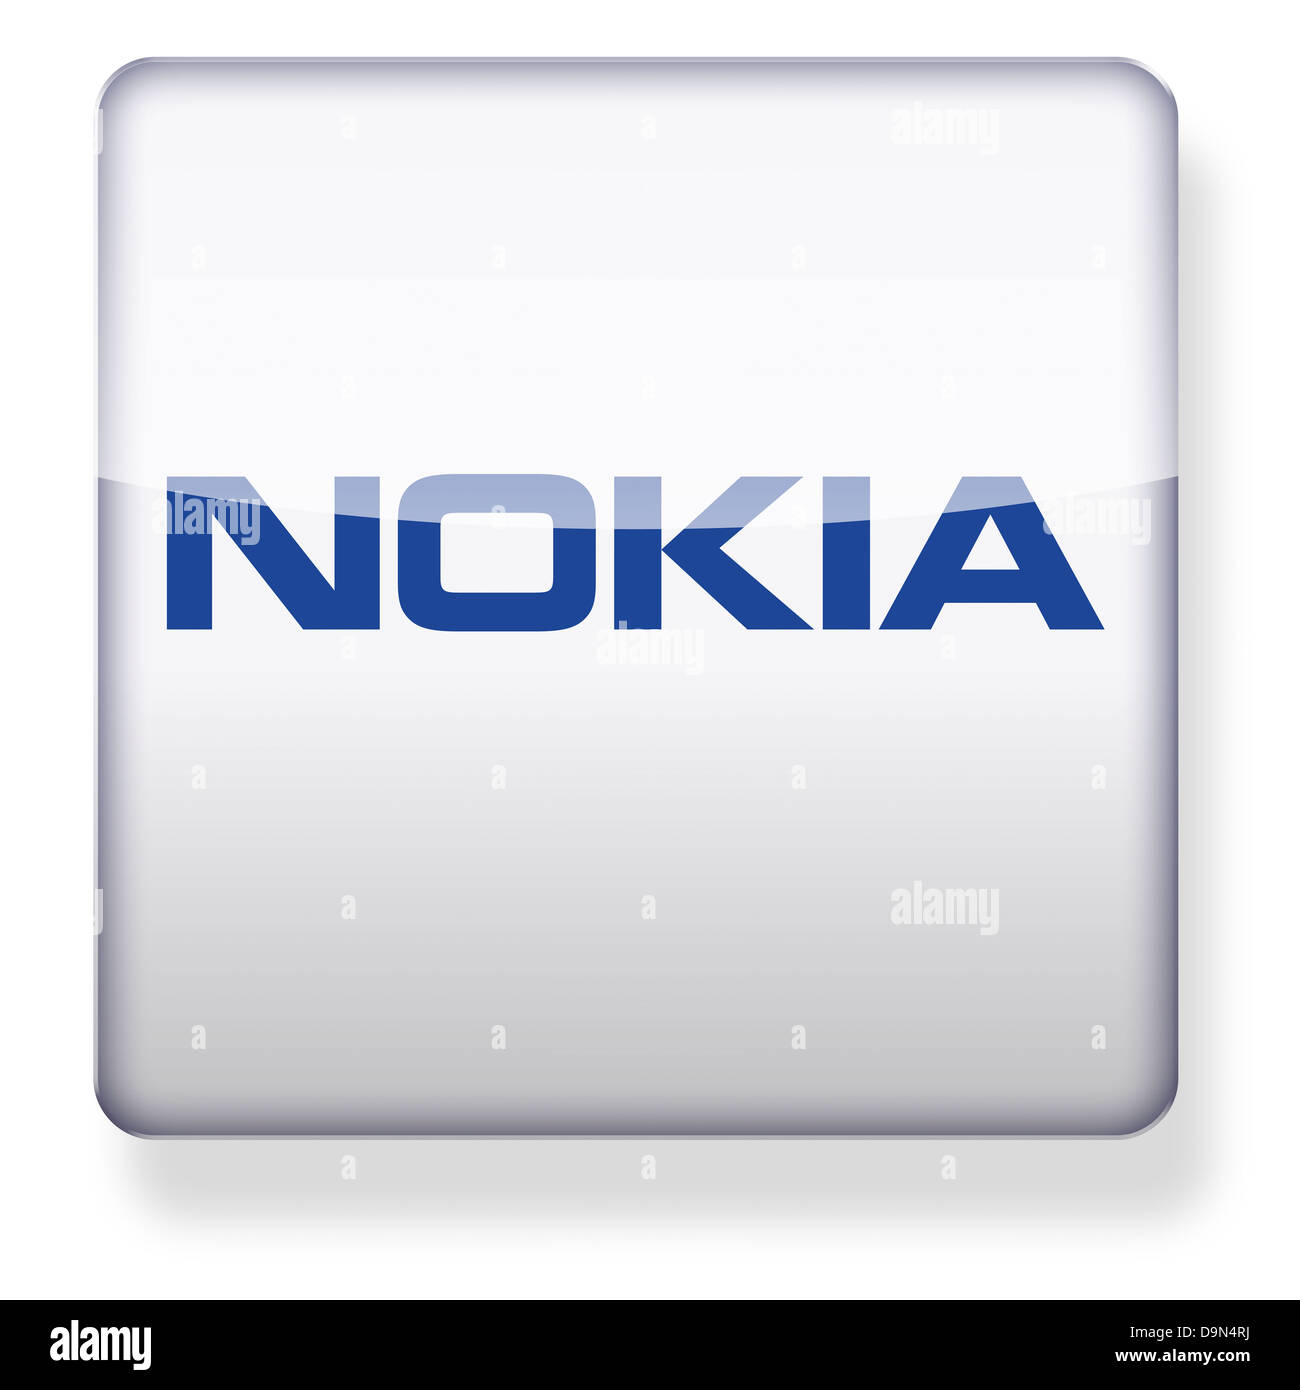 Nokia logo as an app icon. Clipping path included. - Stock Image